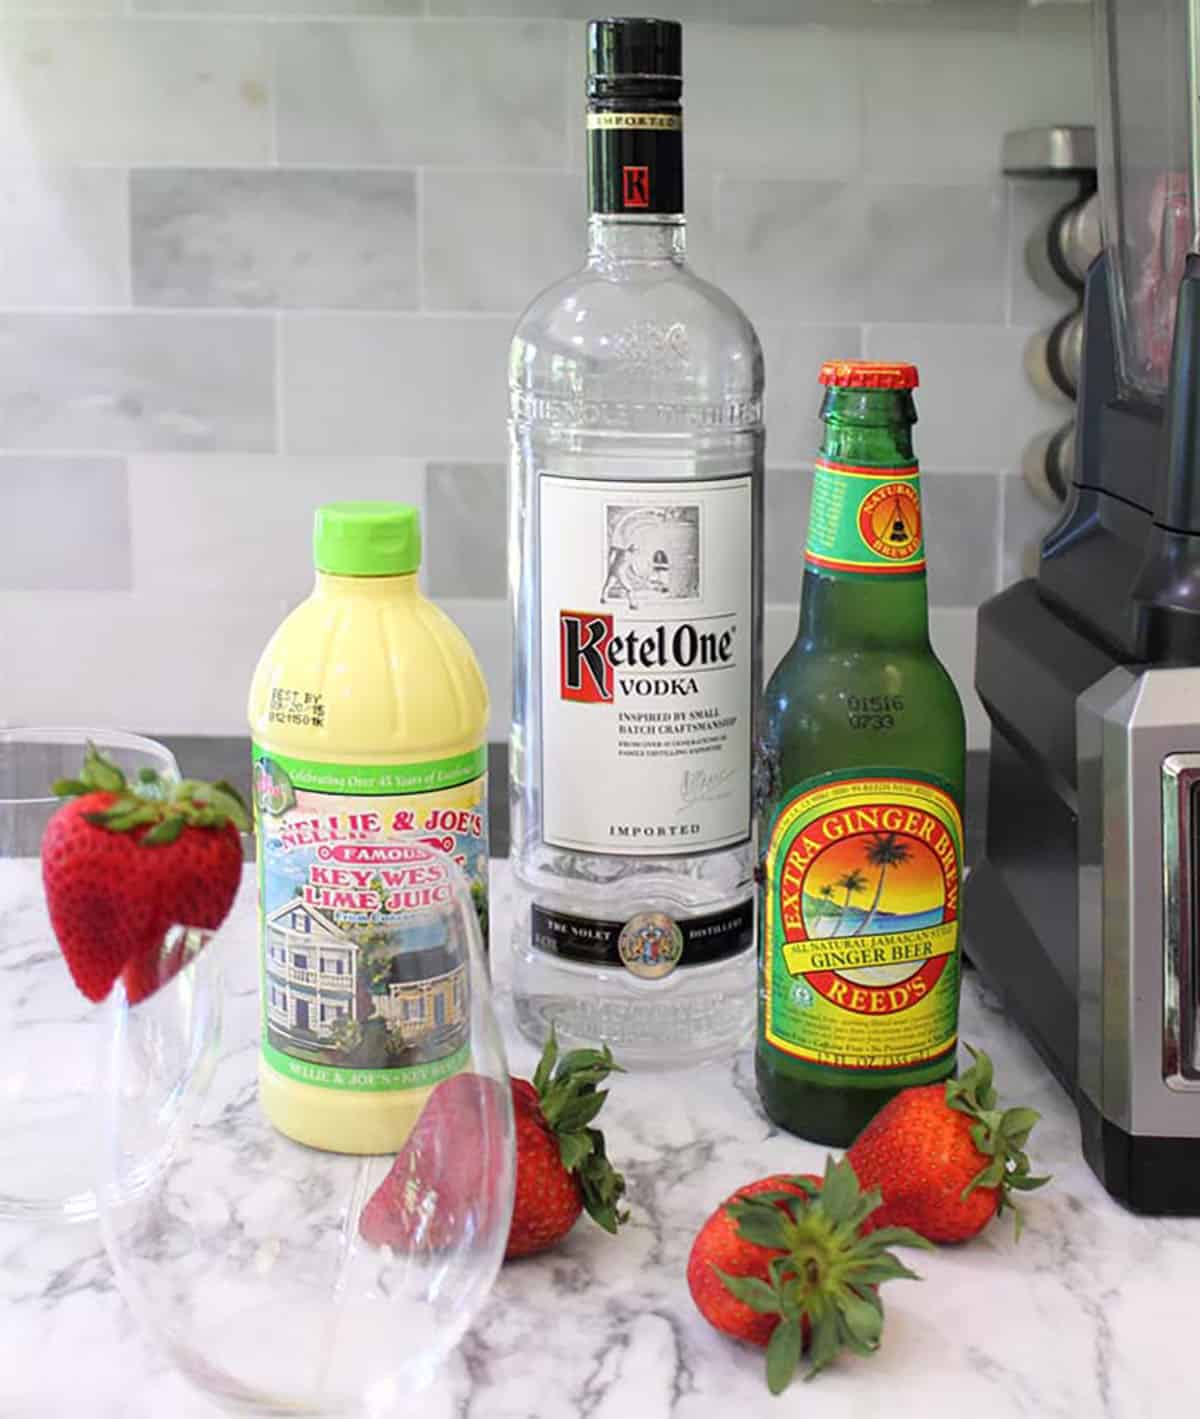 Moscow Mule ingredients - vodka, lime juice, strawberries, ginger beer on white table.